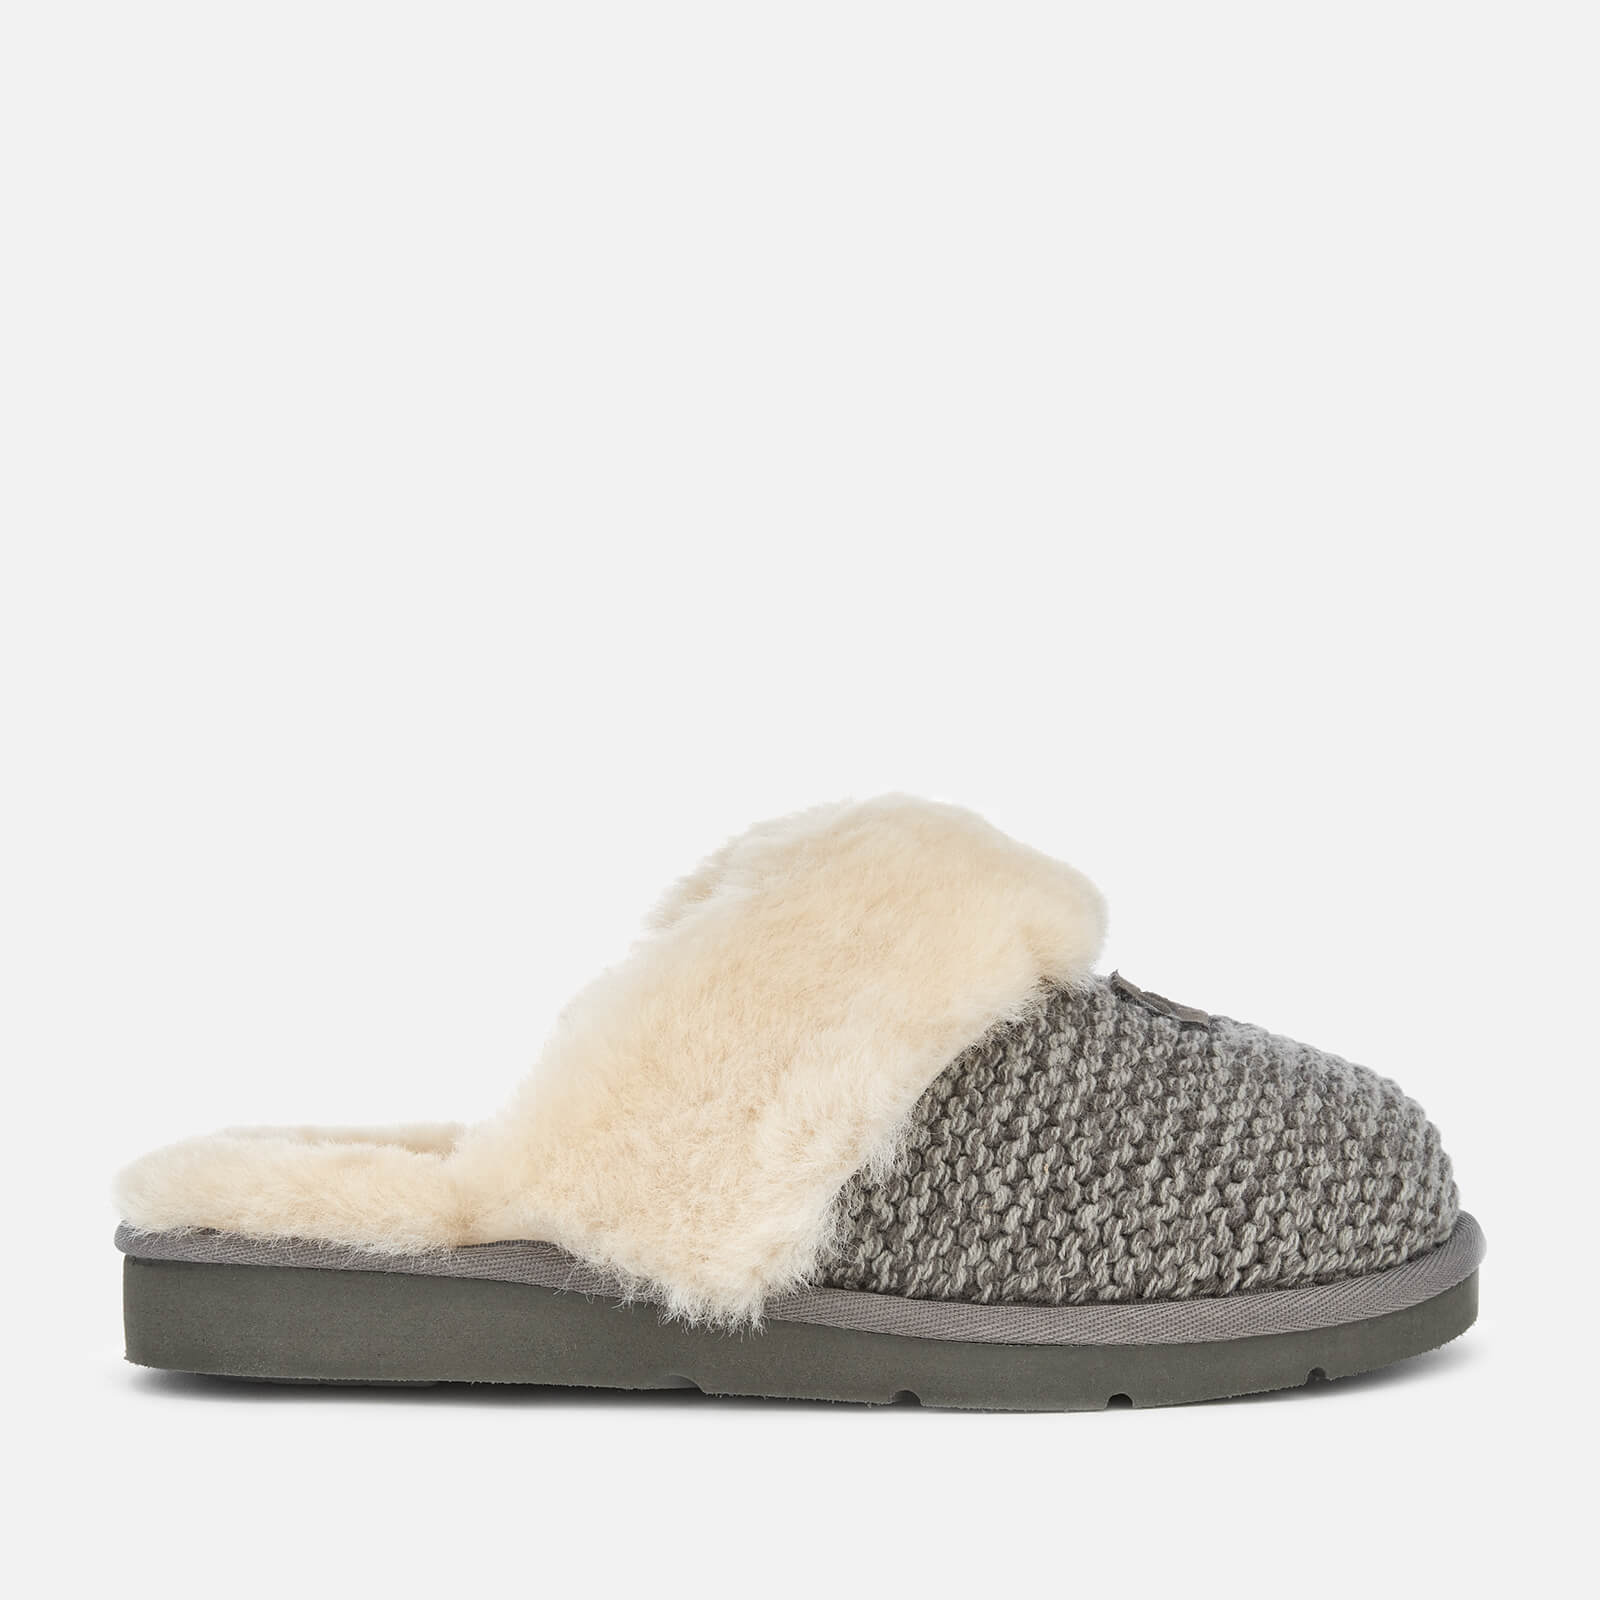 13bd95ace49 UGG Women's Cozy Knit Slippers - Charcoal